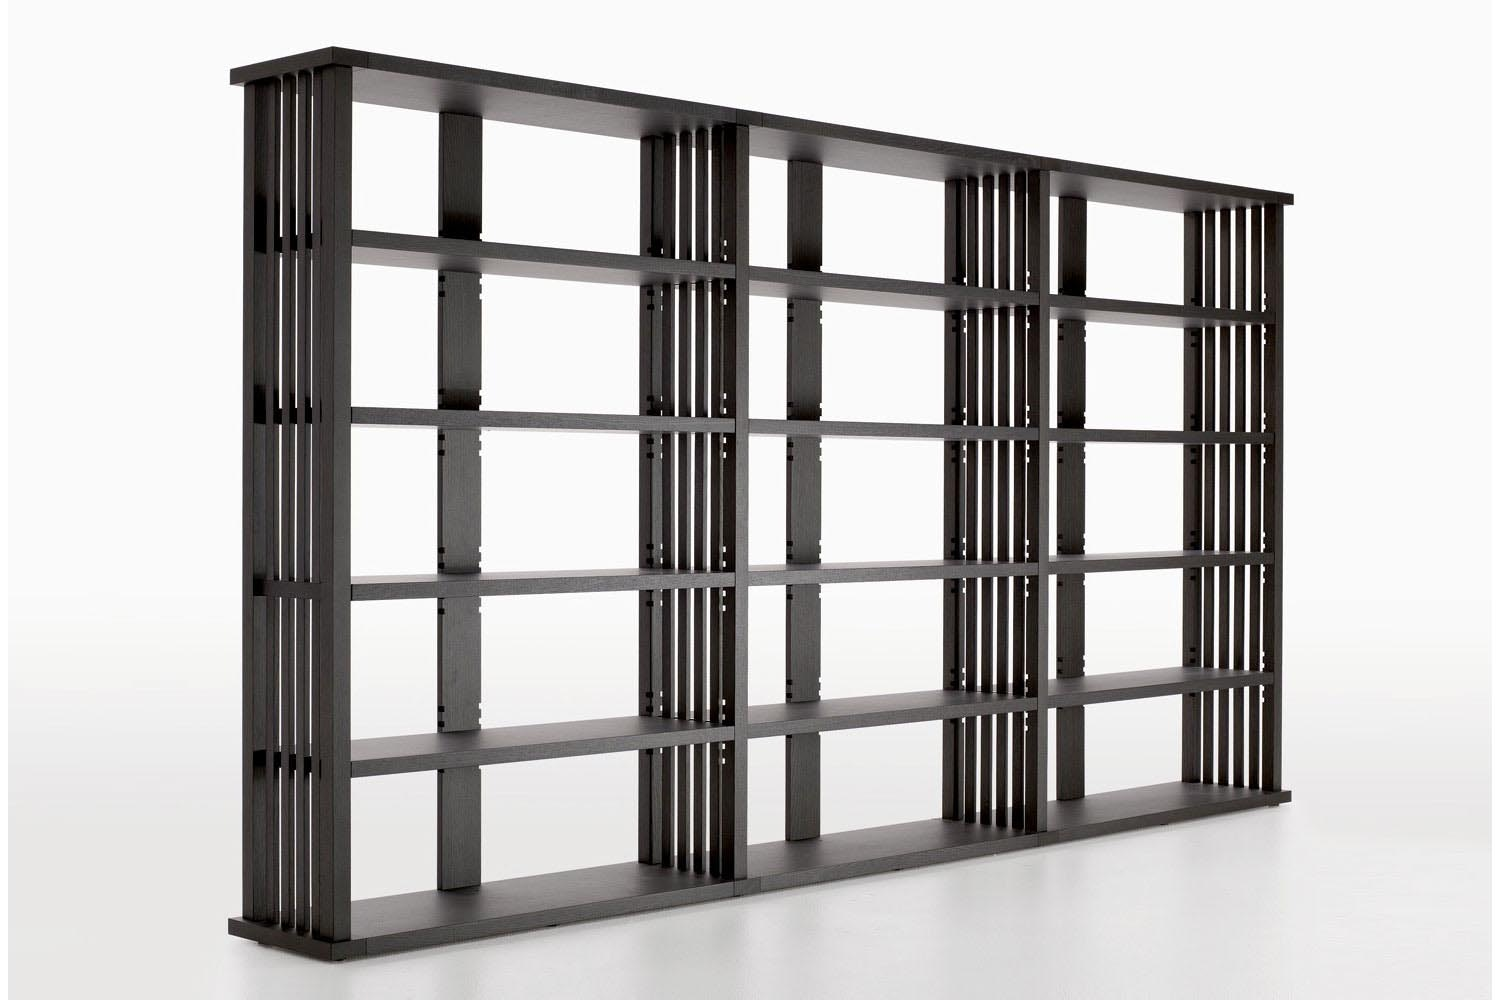 Biblia Bookcase by Antonio Citterio for Maxalto